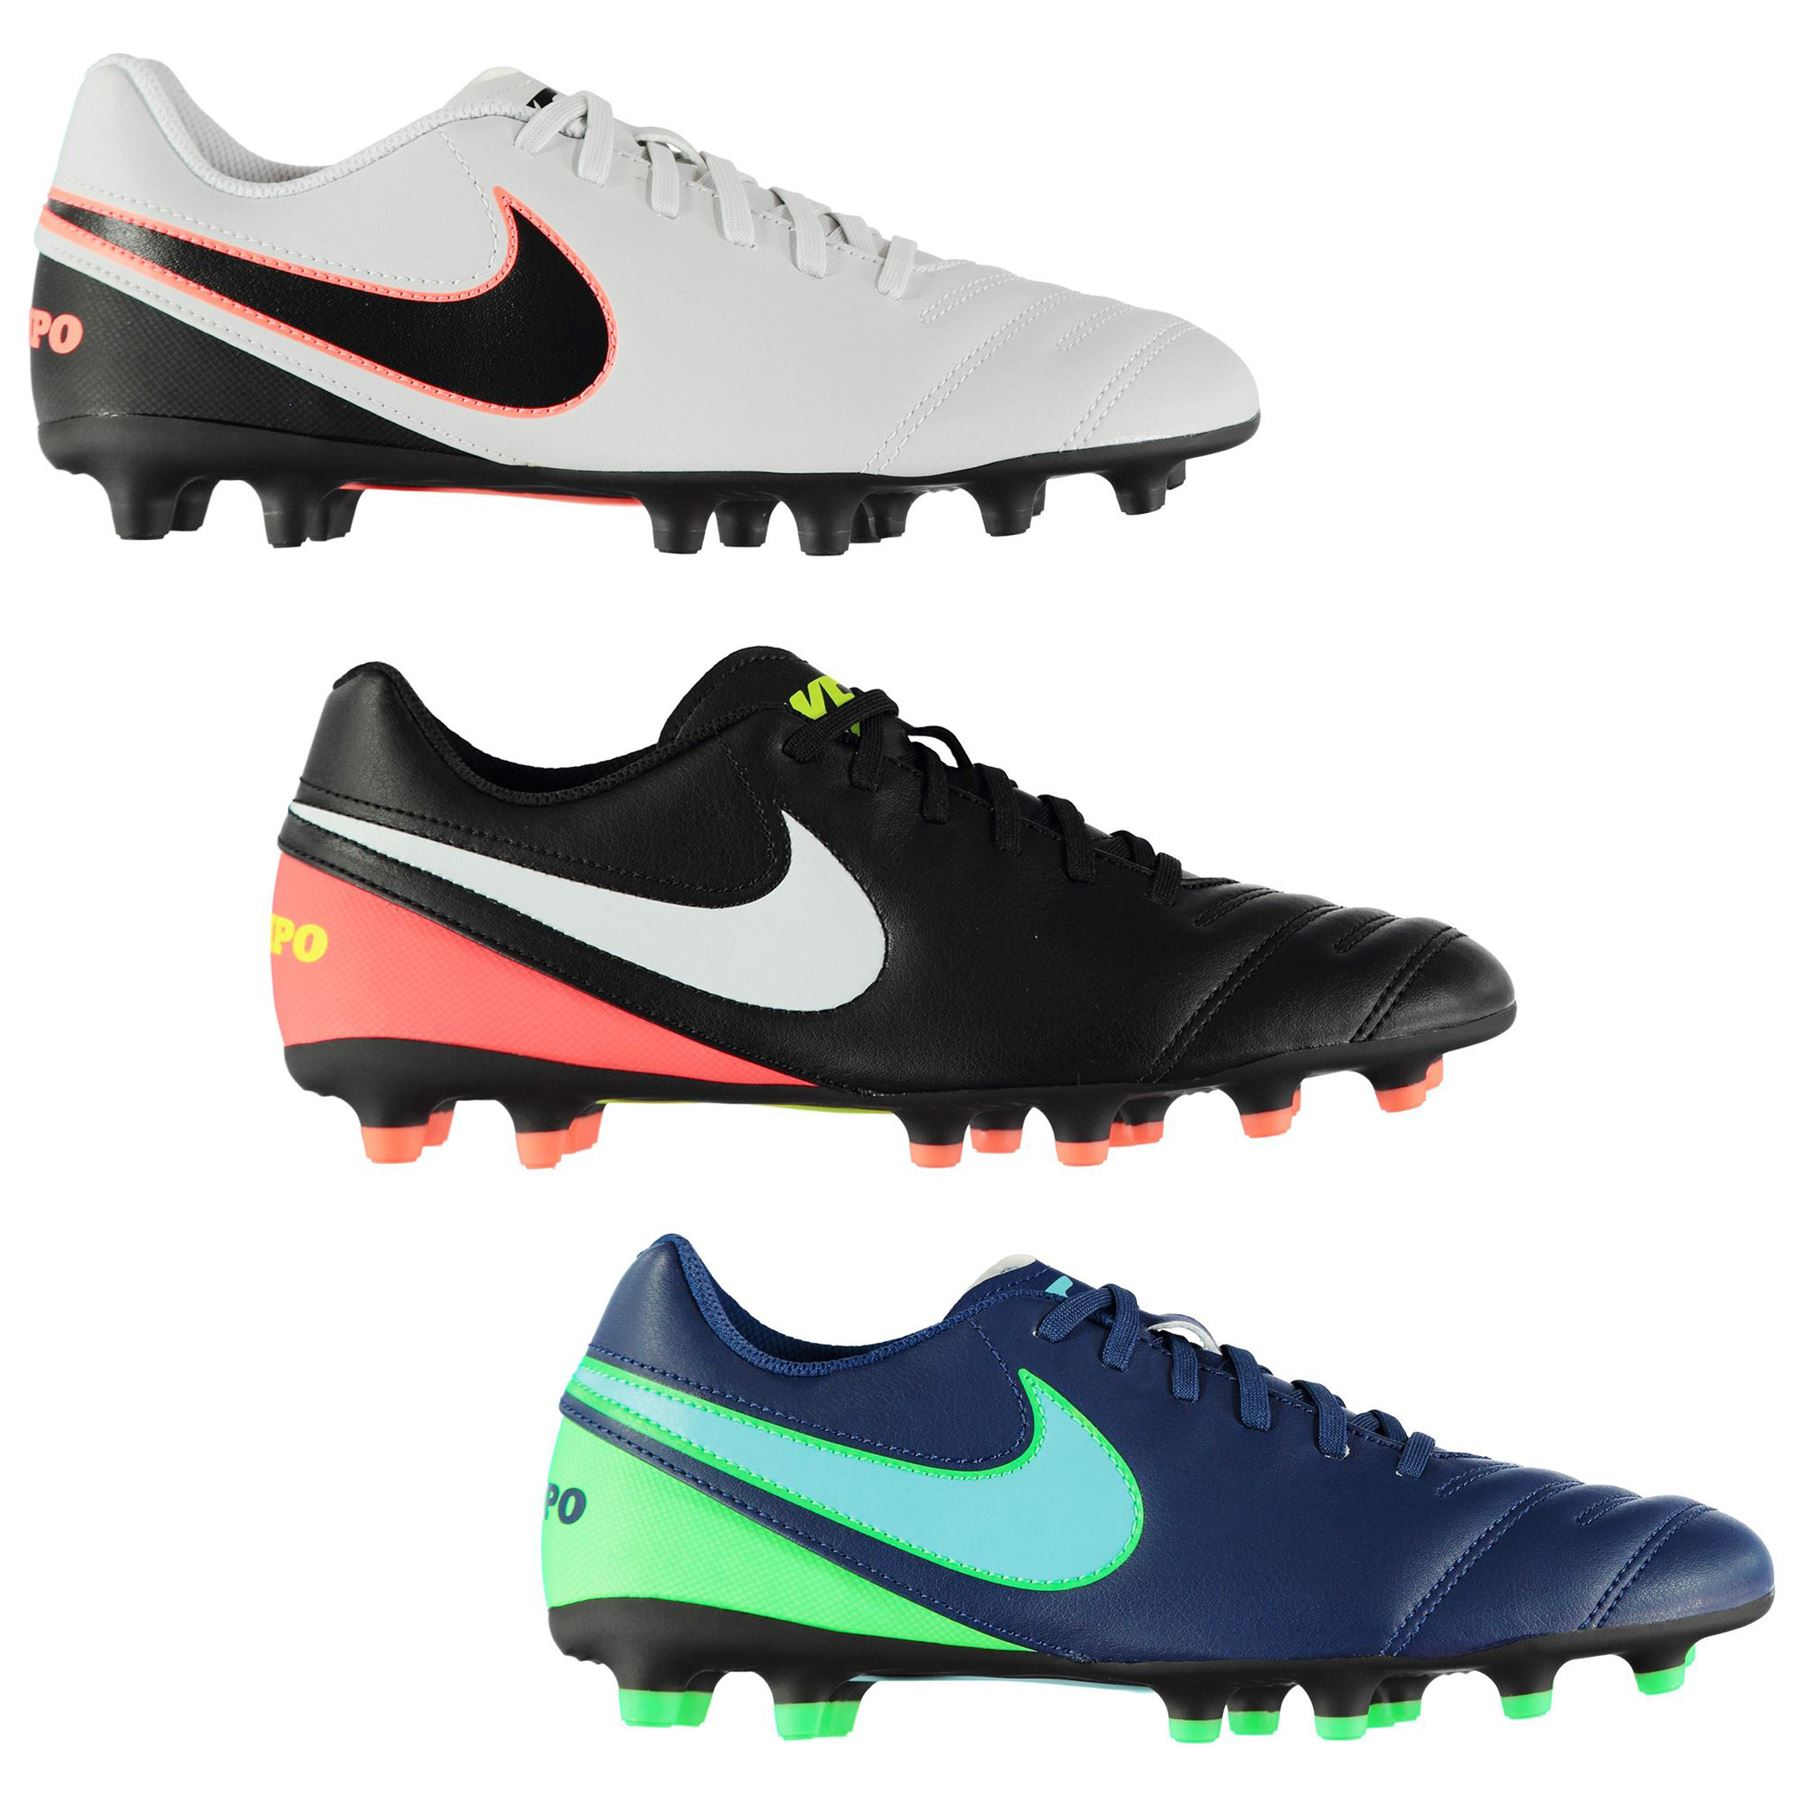 ... Nike Tiempo Rio III Astro Turf Football Trainers Mens Soccer Shoes  Sneakers ... af8b1148a2116